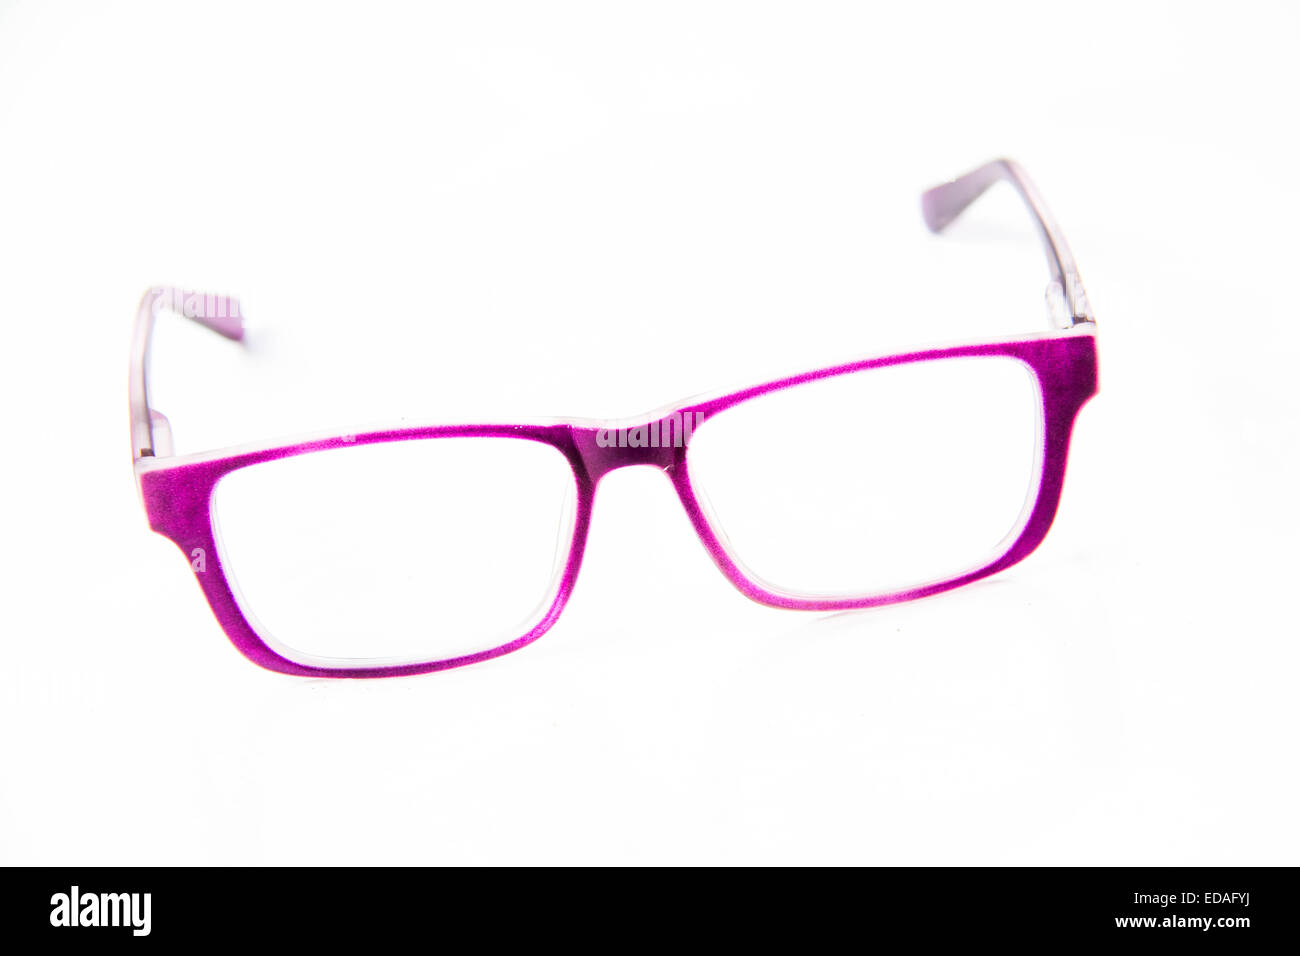 fbe137786b4 A eyeglasses isolated on the white background stock image jpg 1300x956 Colorful  eyeglasses